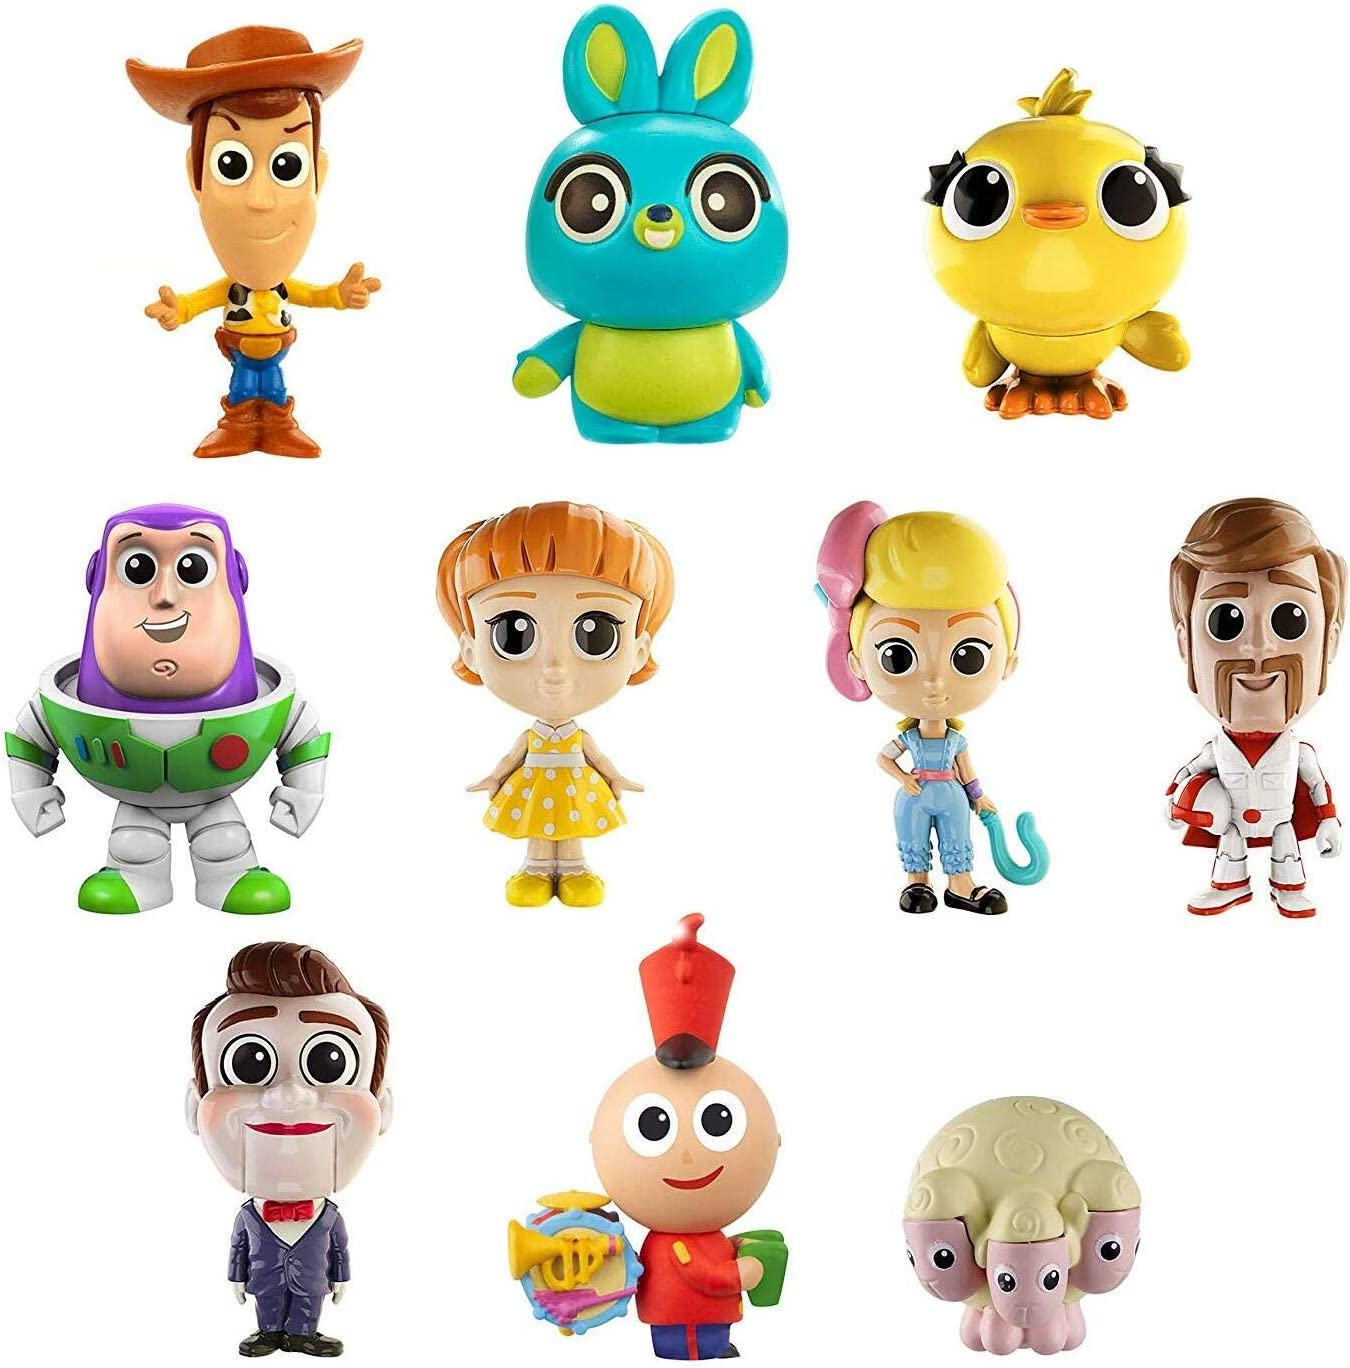 Toy Story Minis Ultimate New Friends 10 Pack Figures Disney Pixar Toy NEW